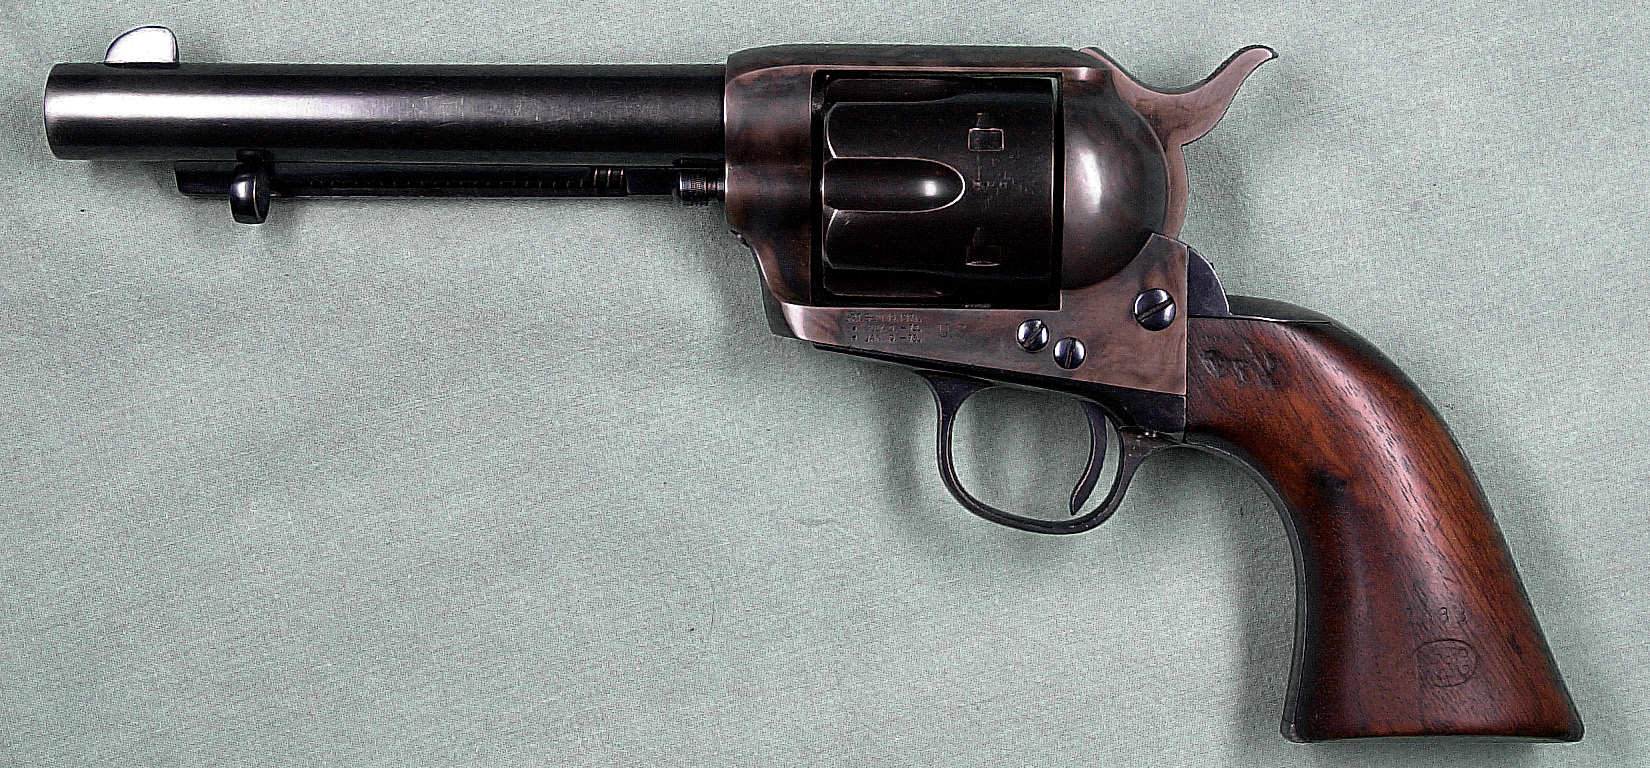 Colt Single Action Army Wikip dia a enciclop dia livre